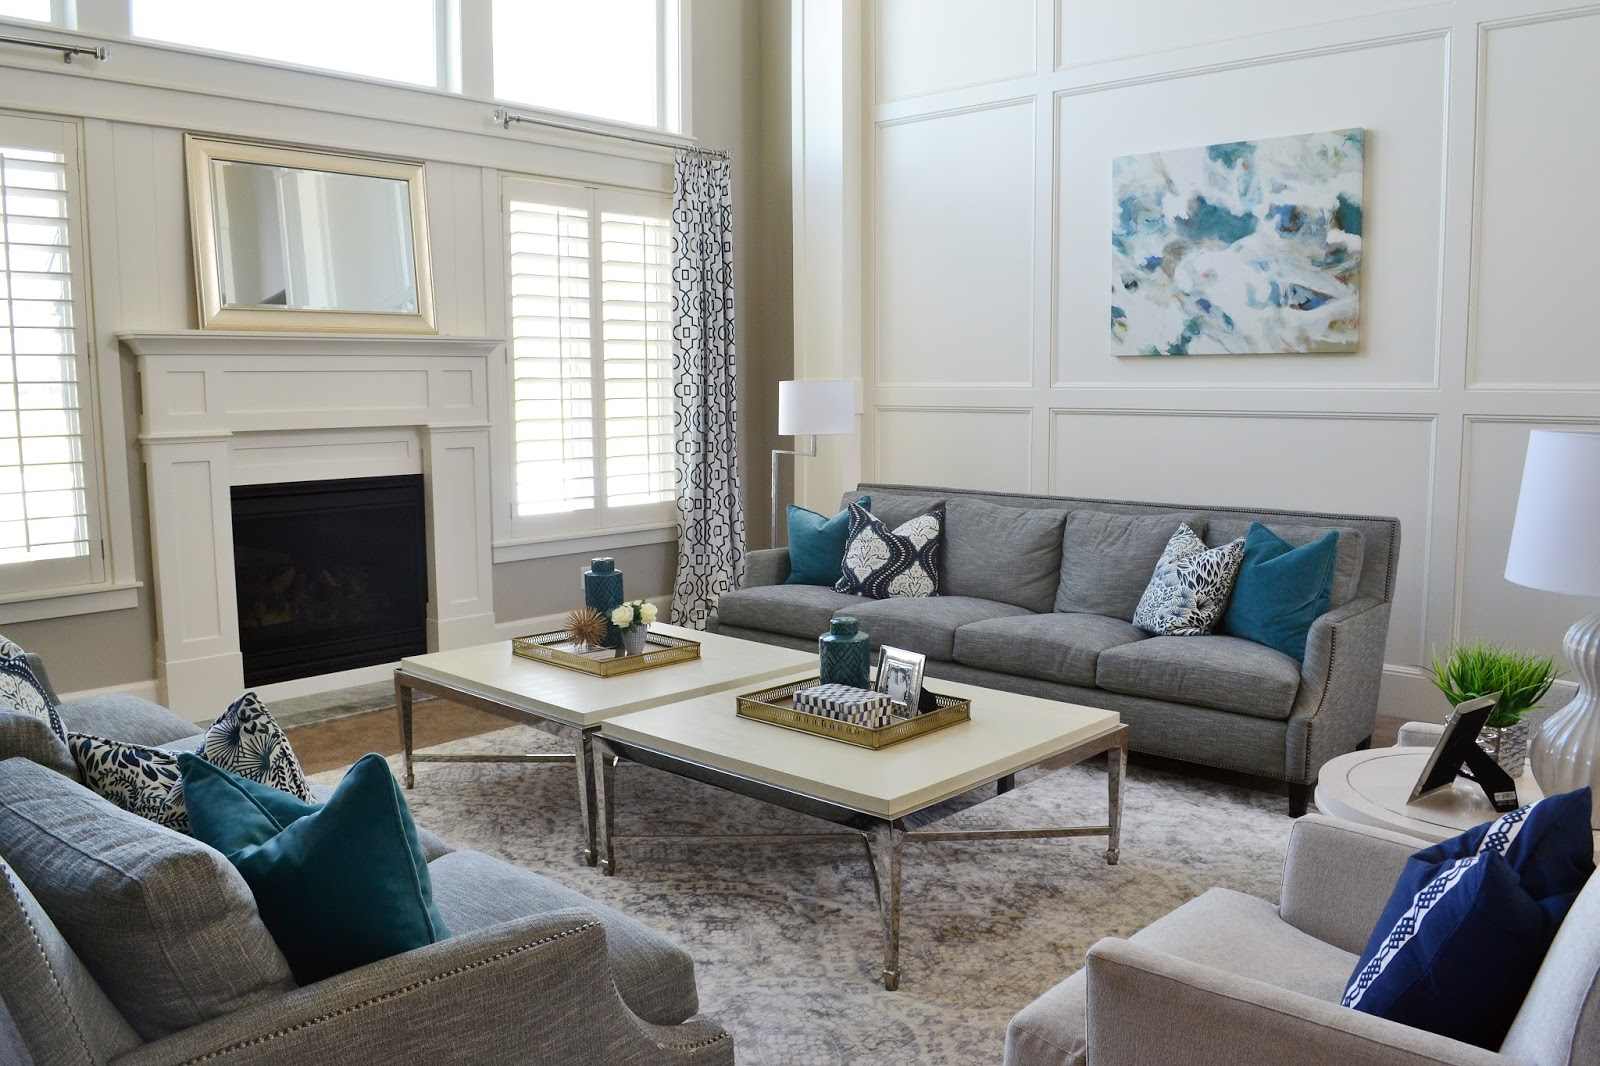 Foxtrotter One Project Sita Montgomery Interiors